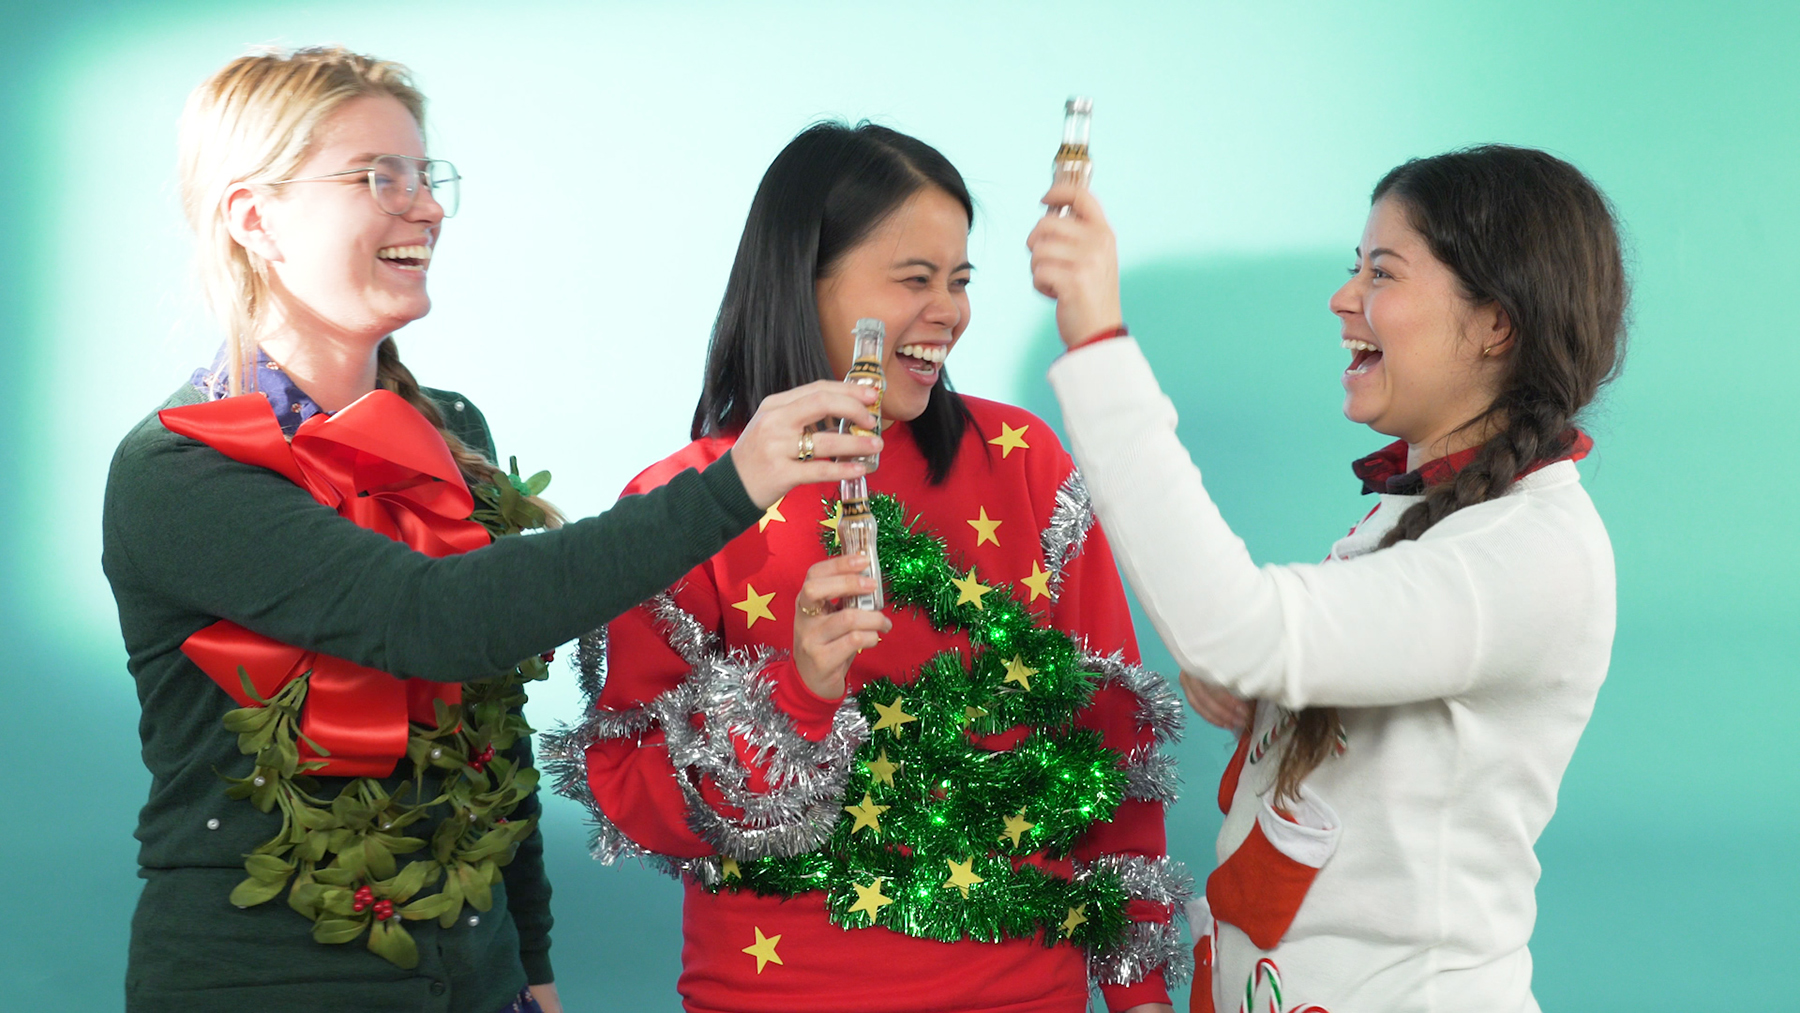 3 women in DIY ugly Christmas sweaters